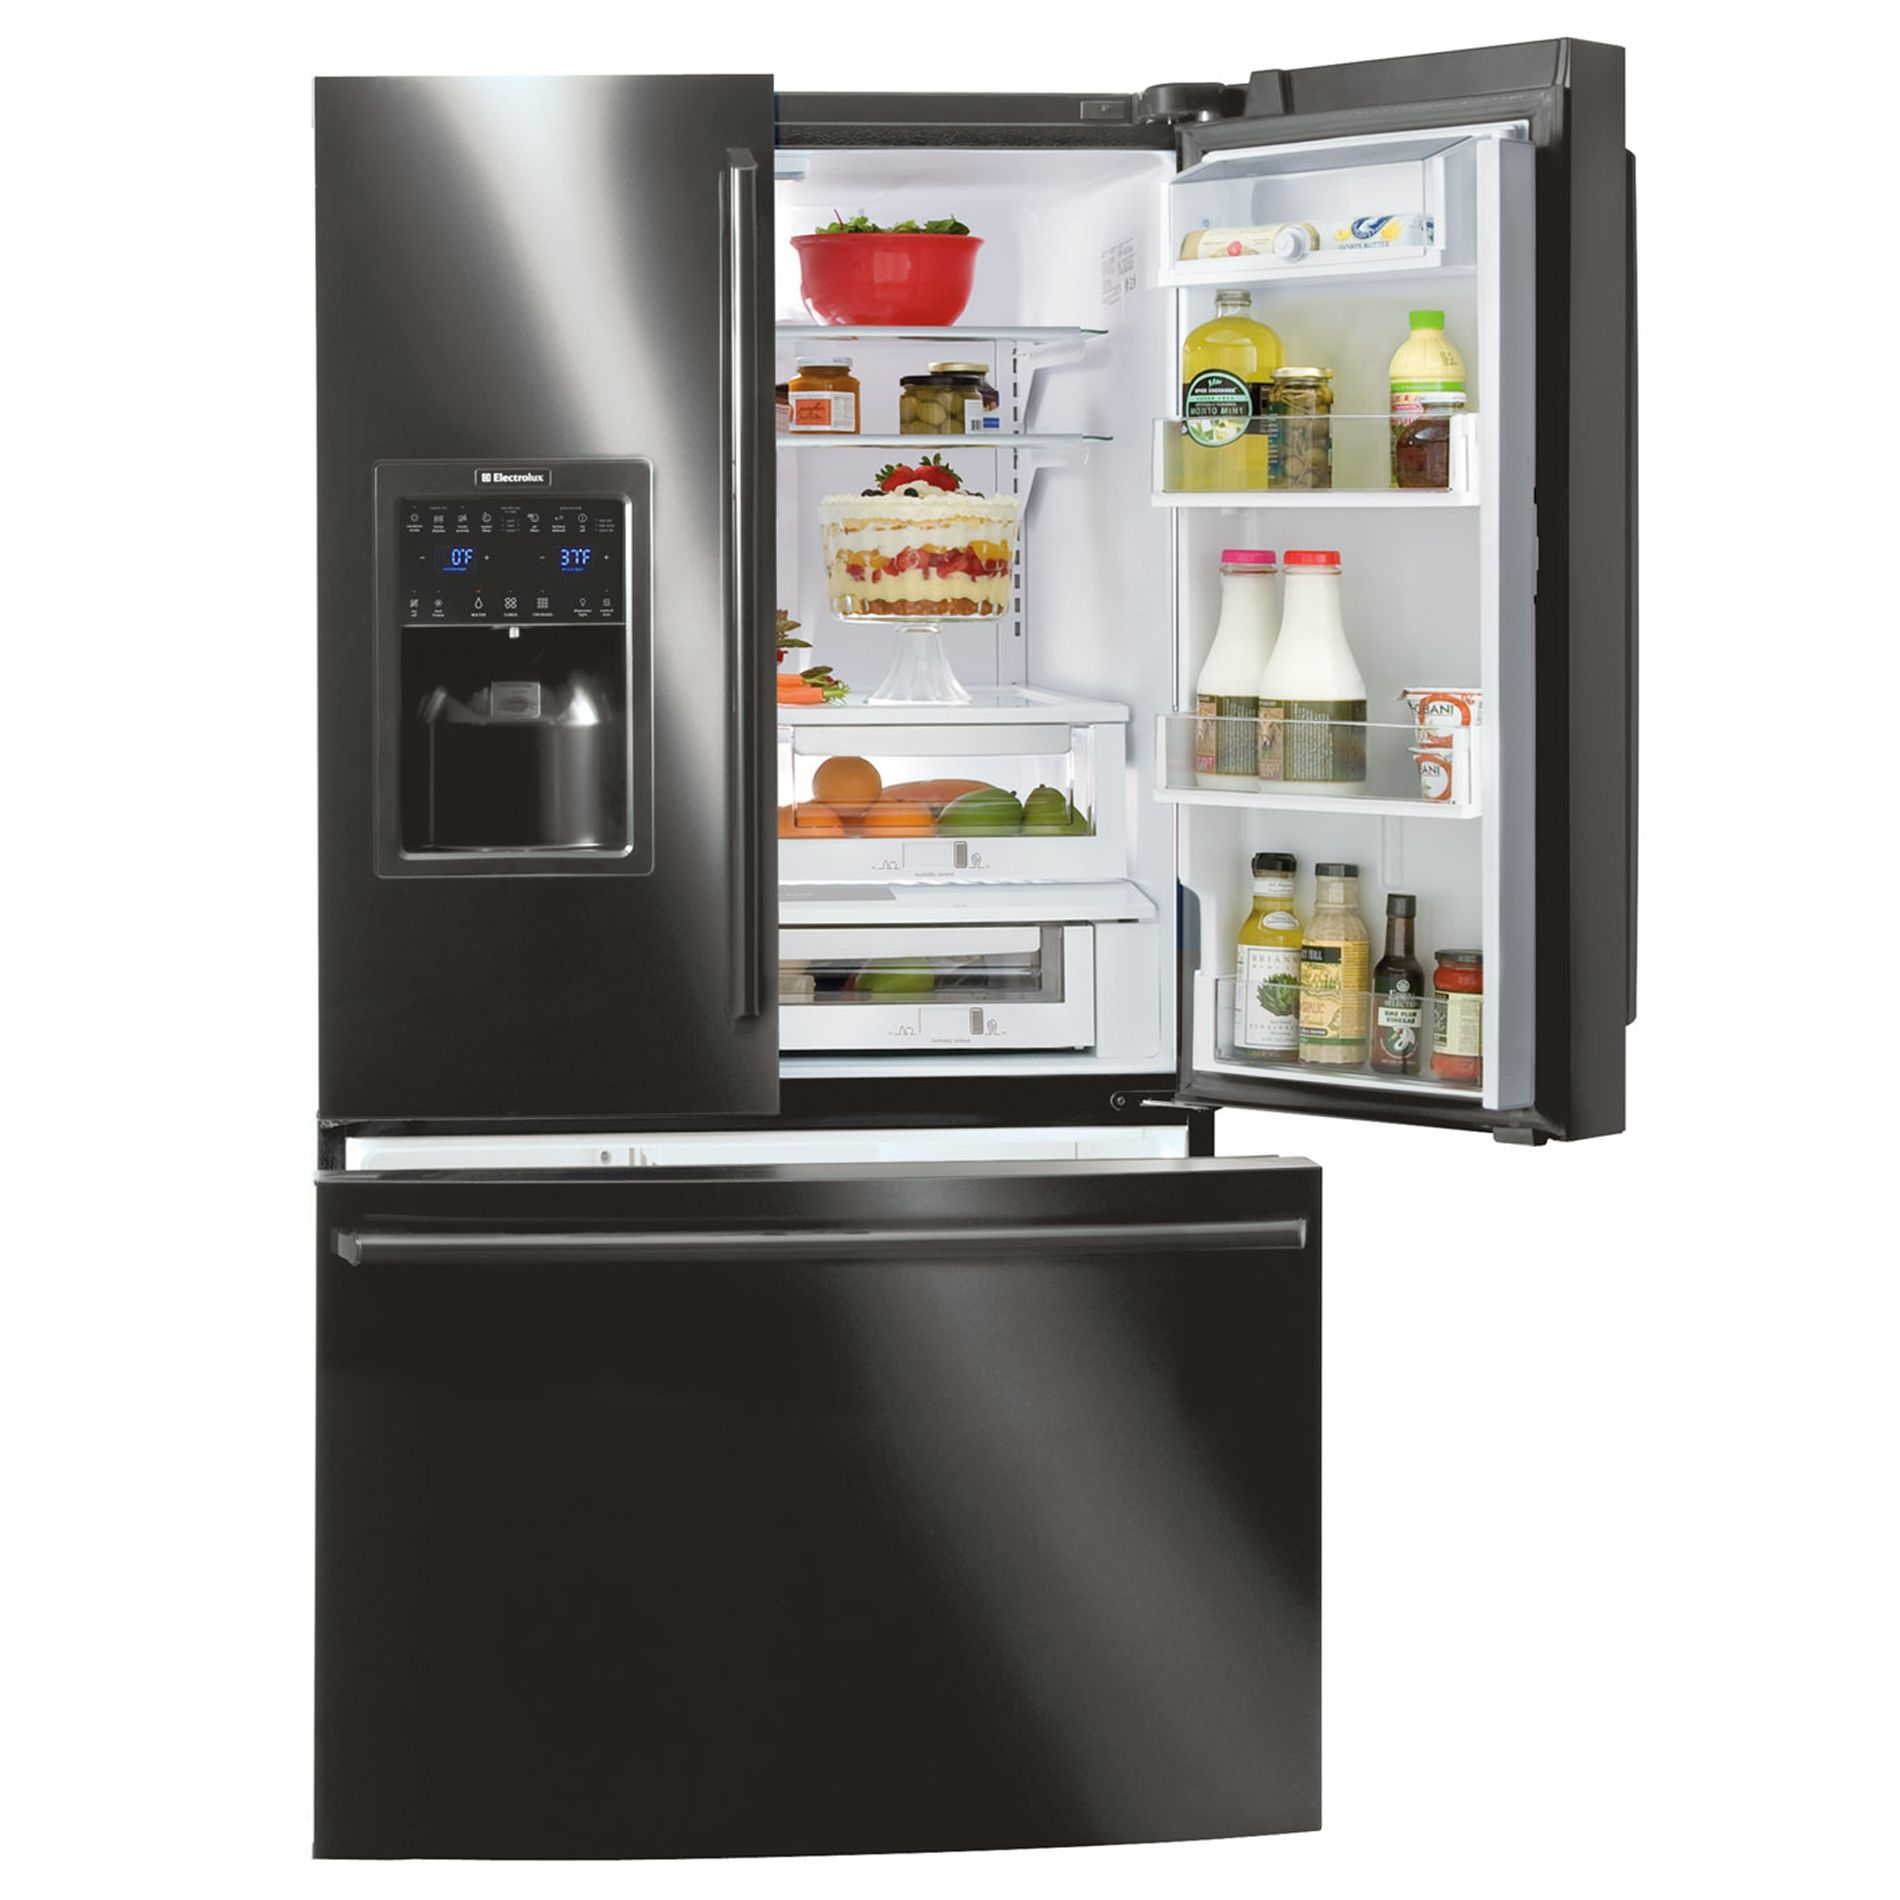 Electrolux 22.6 cu. ft. French-Door Bottom Freezer Refrigerator  (EI23BC56I)